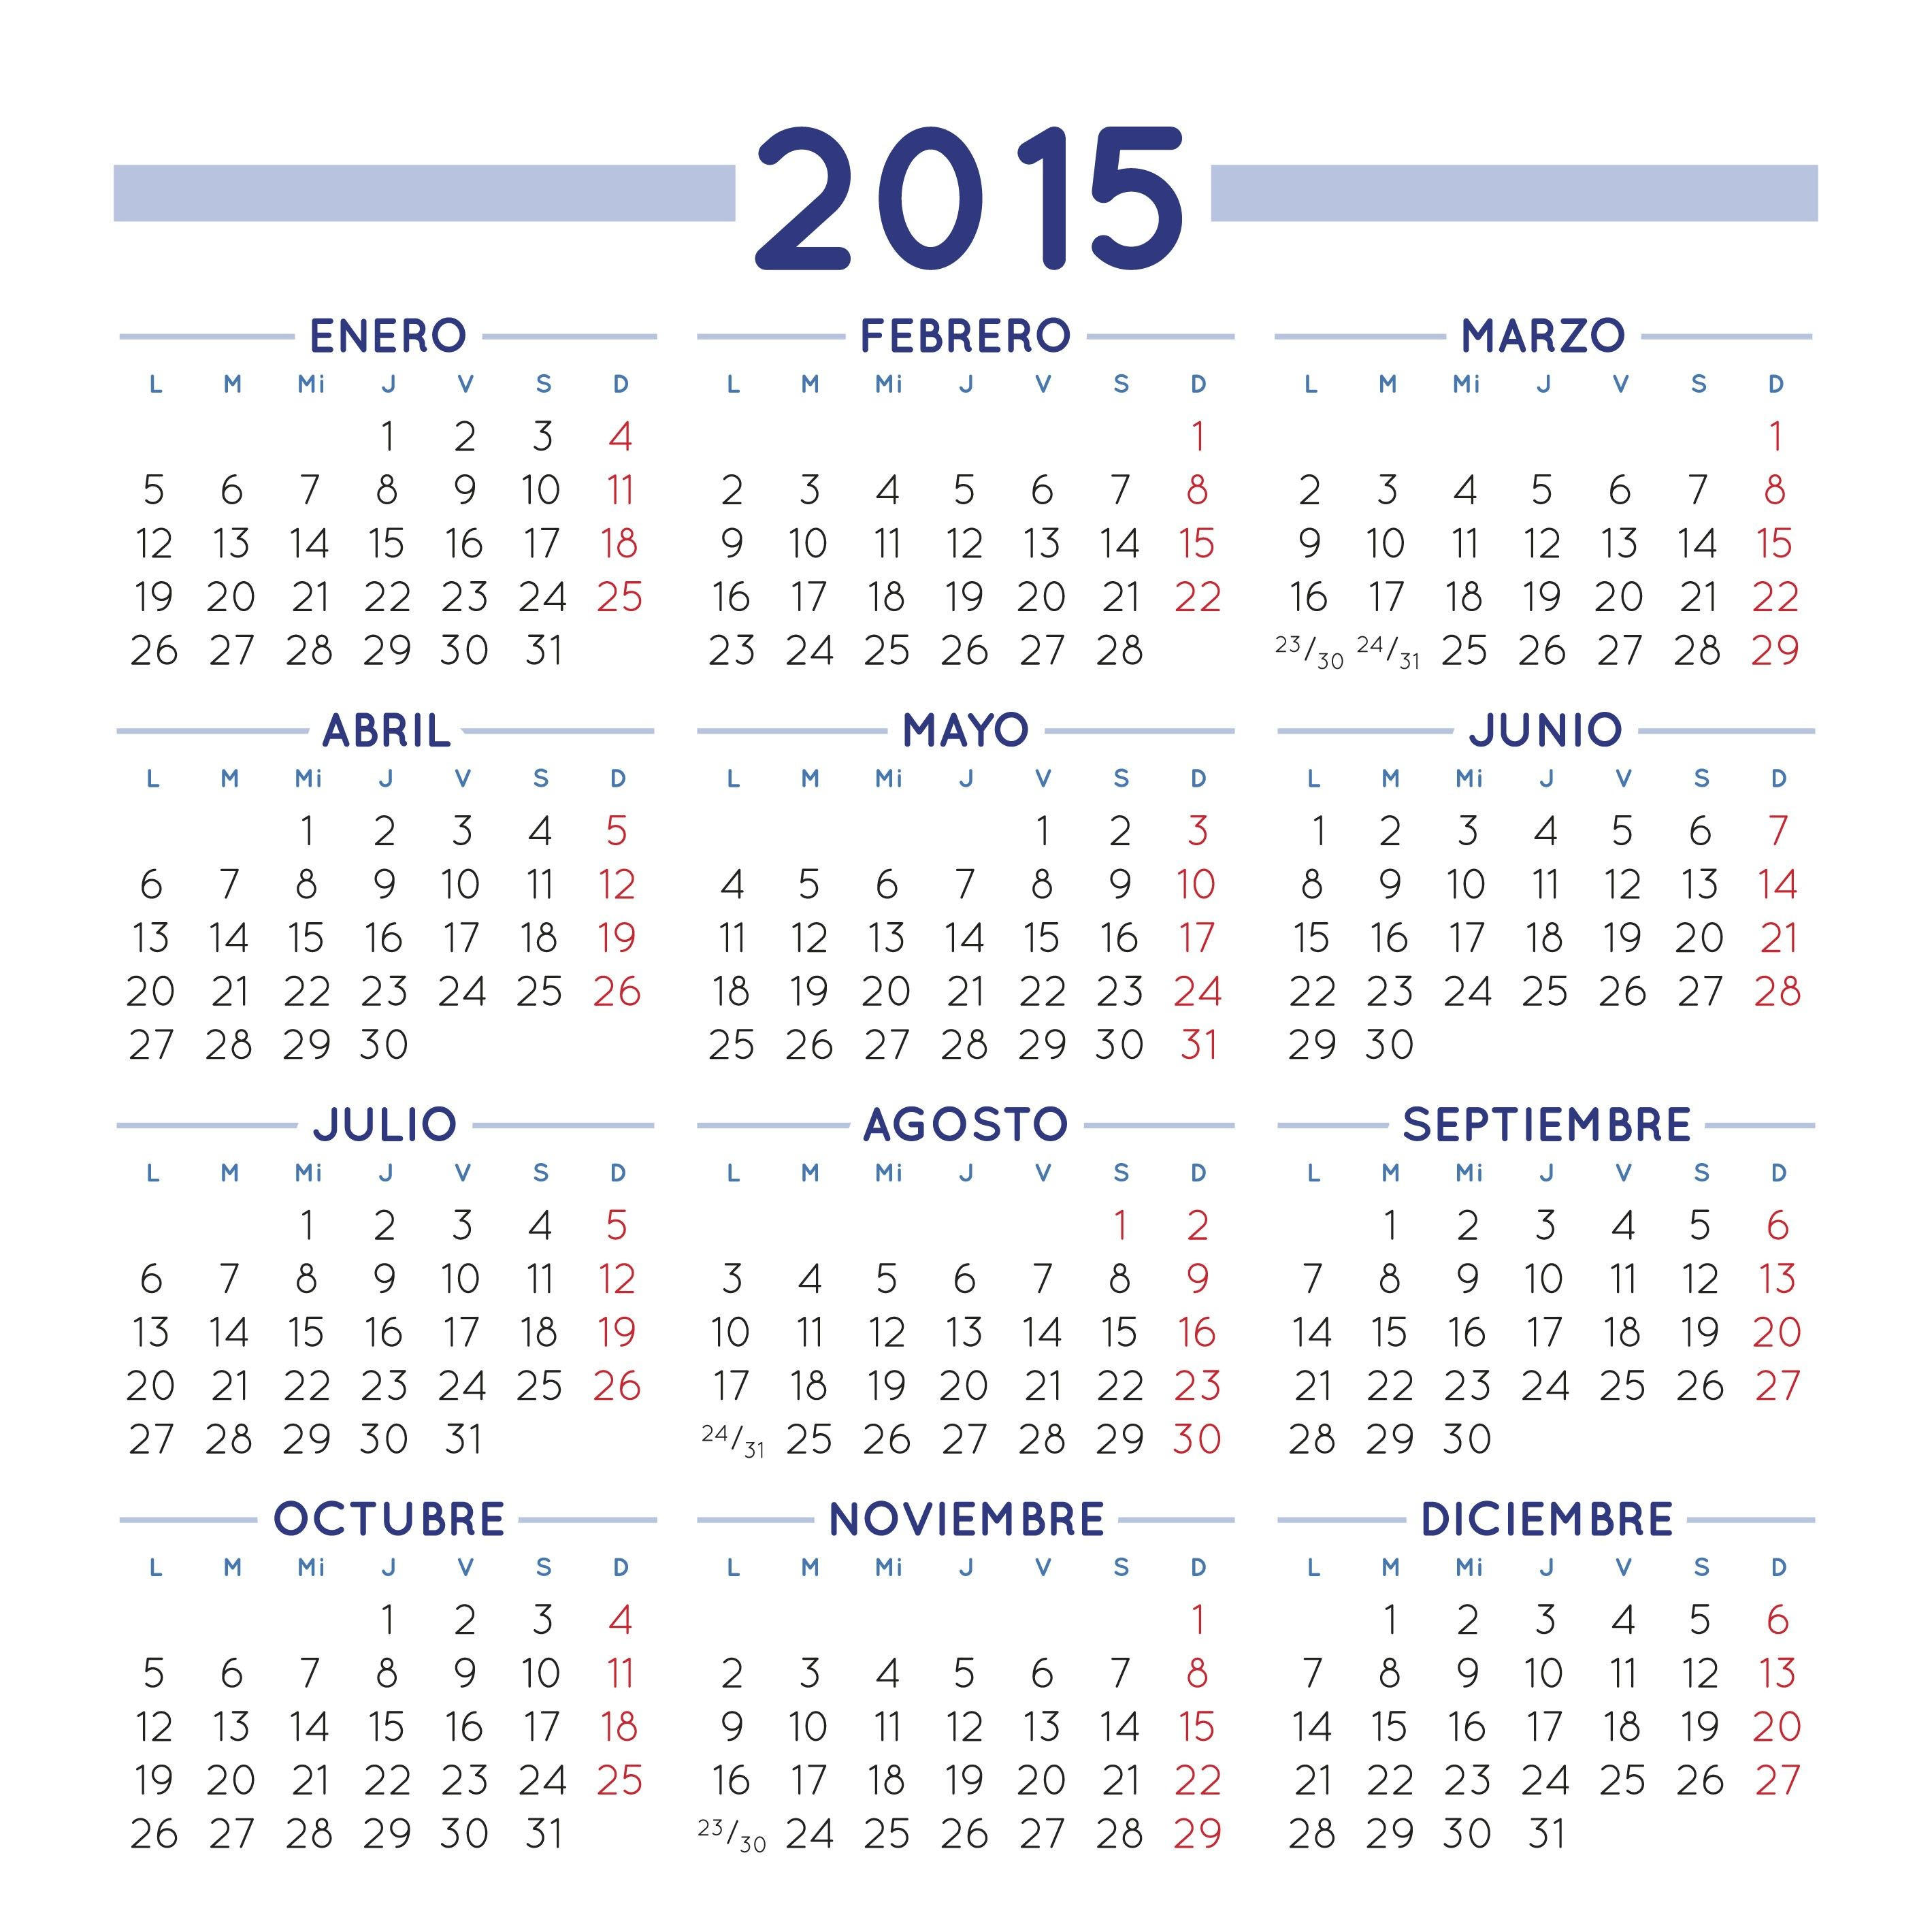 Calendario 2019 Con Festivos Colombia Para Imprimir Gratis Mejores Y Más Novedosos Download 2019 Calendar Printable with Holidays List